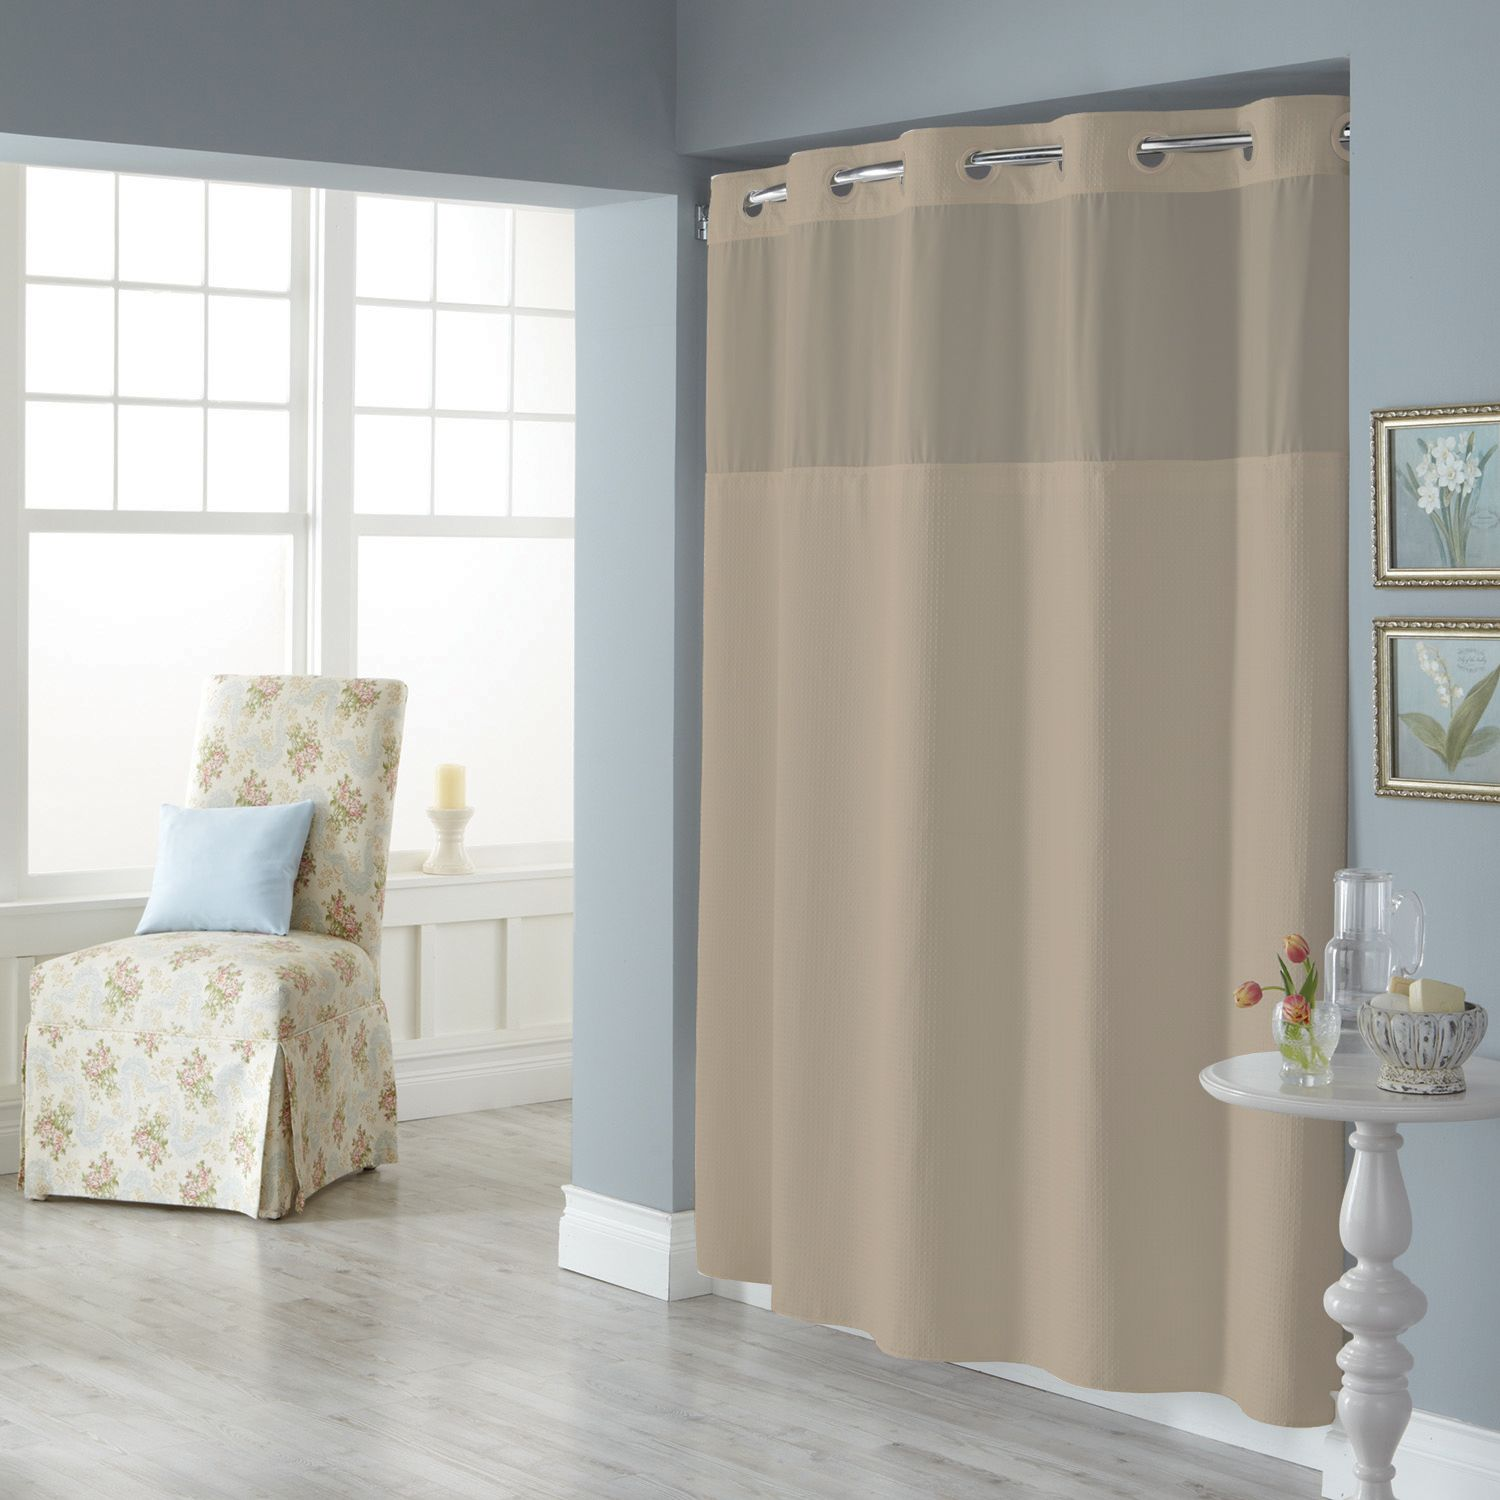 dobby pique mystery hookless white fabric shower curtain collection